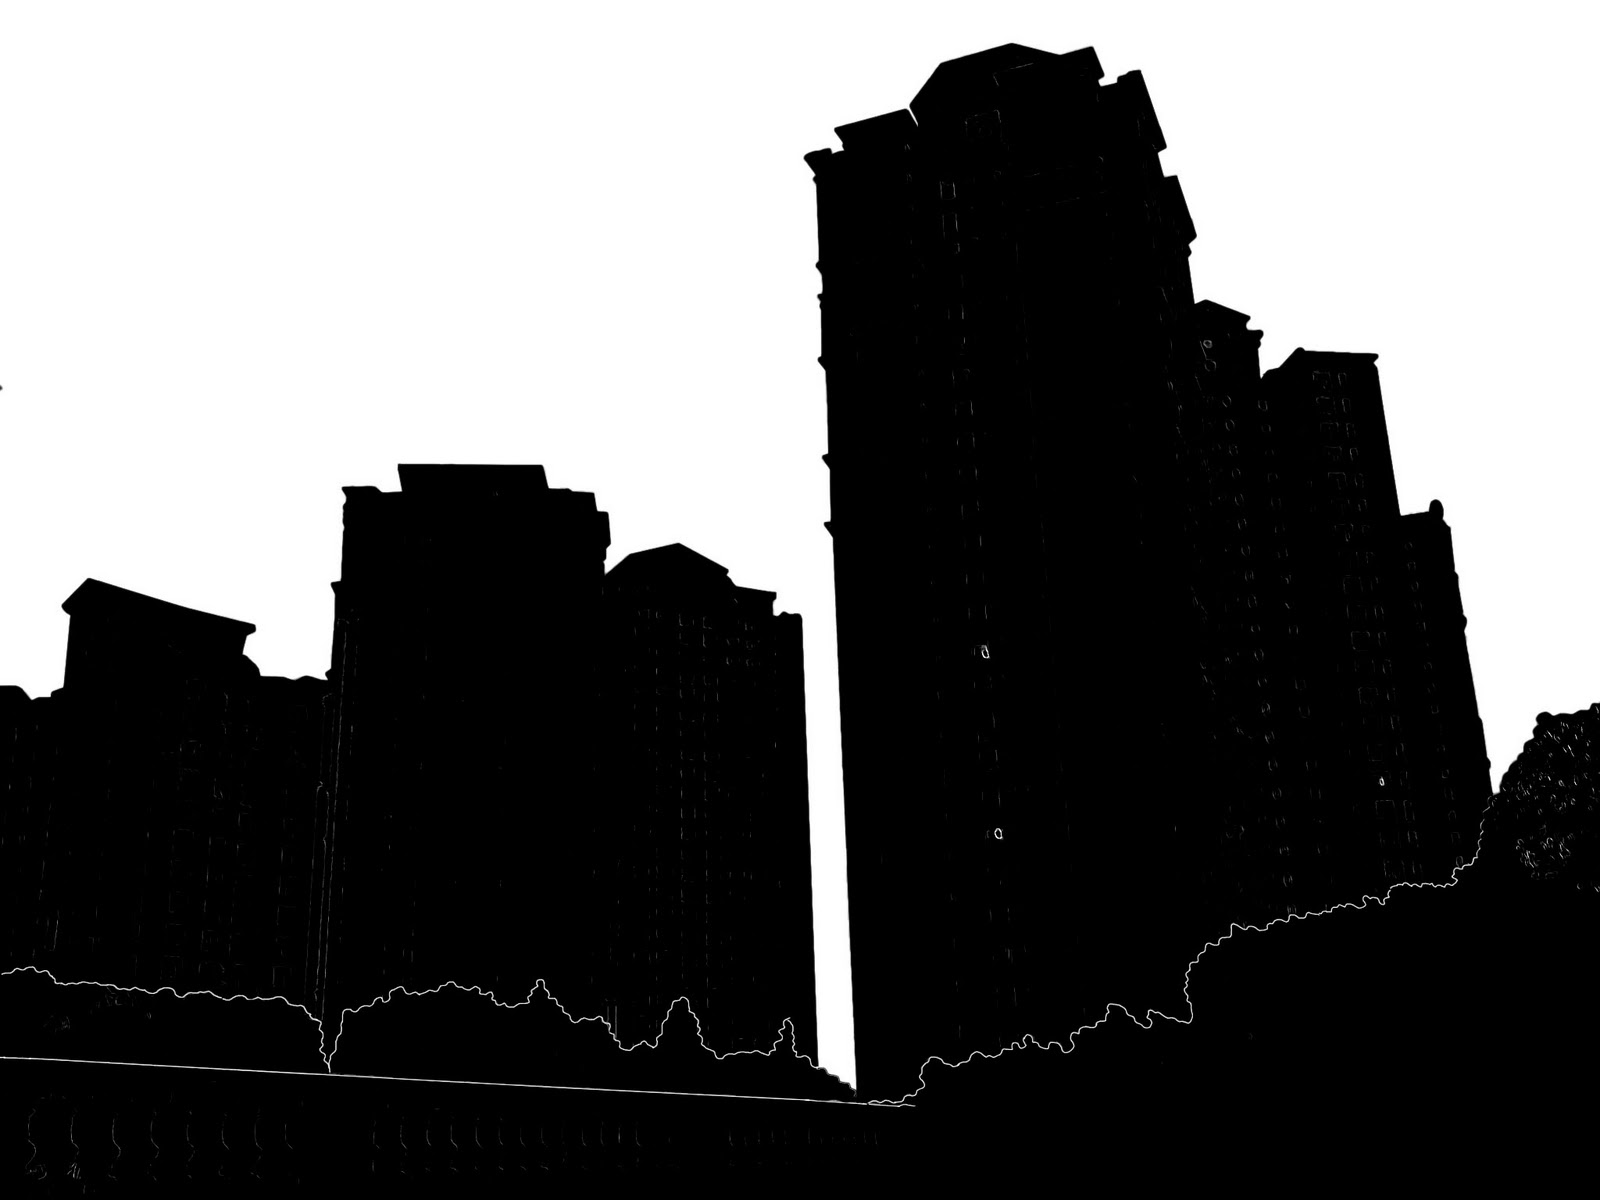 1600x1200 Stock Pictures Skyscraper Silhouettes And Illustrations